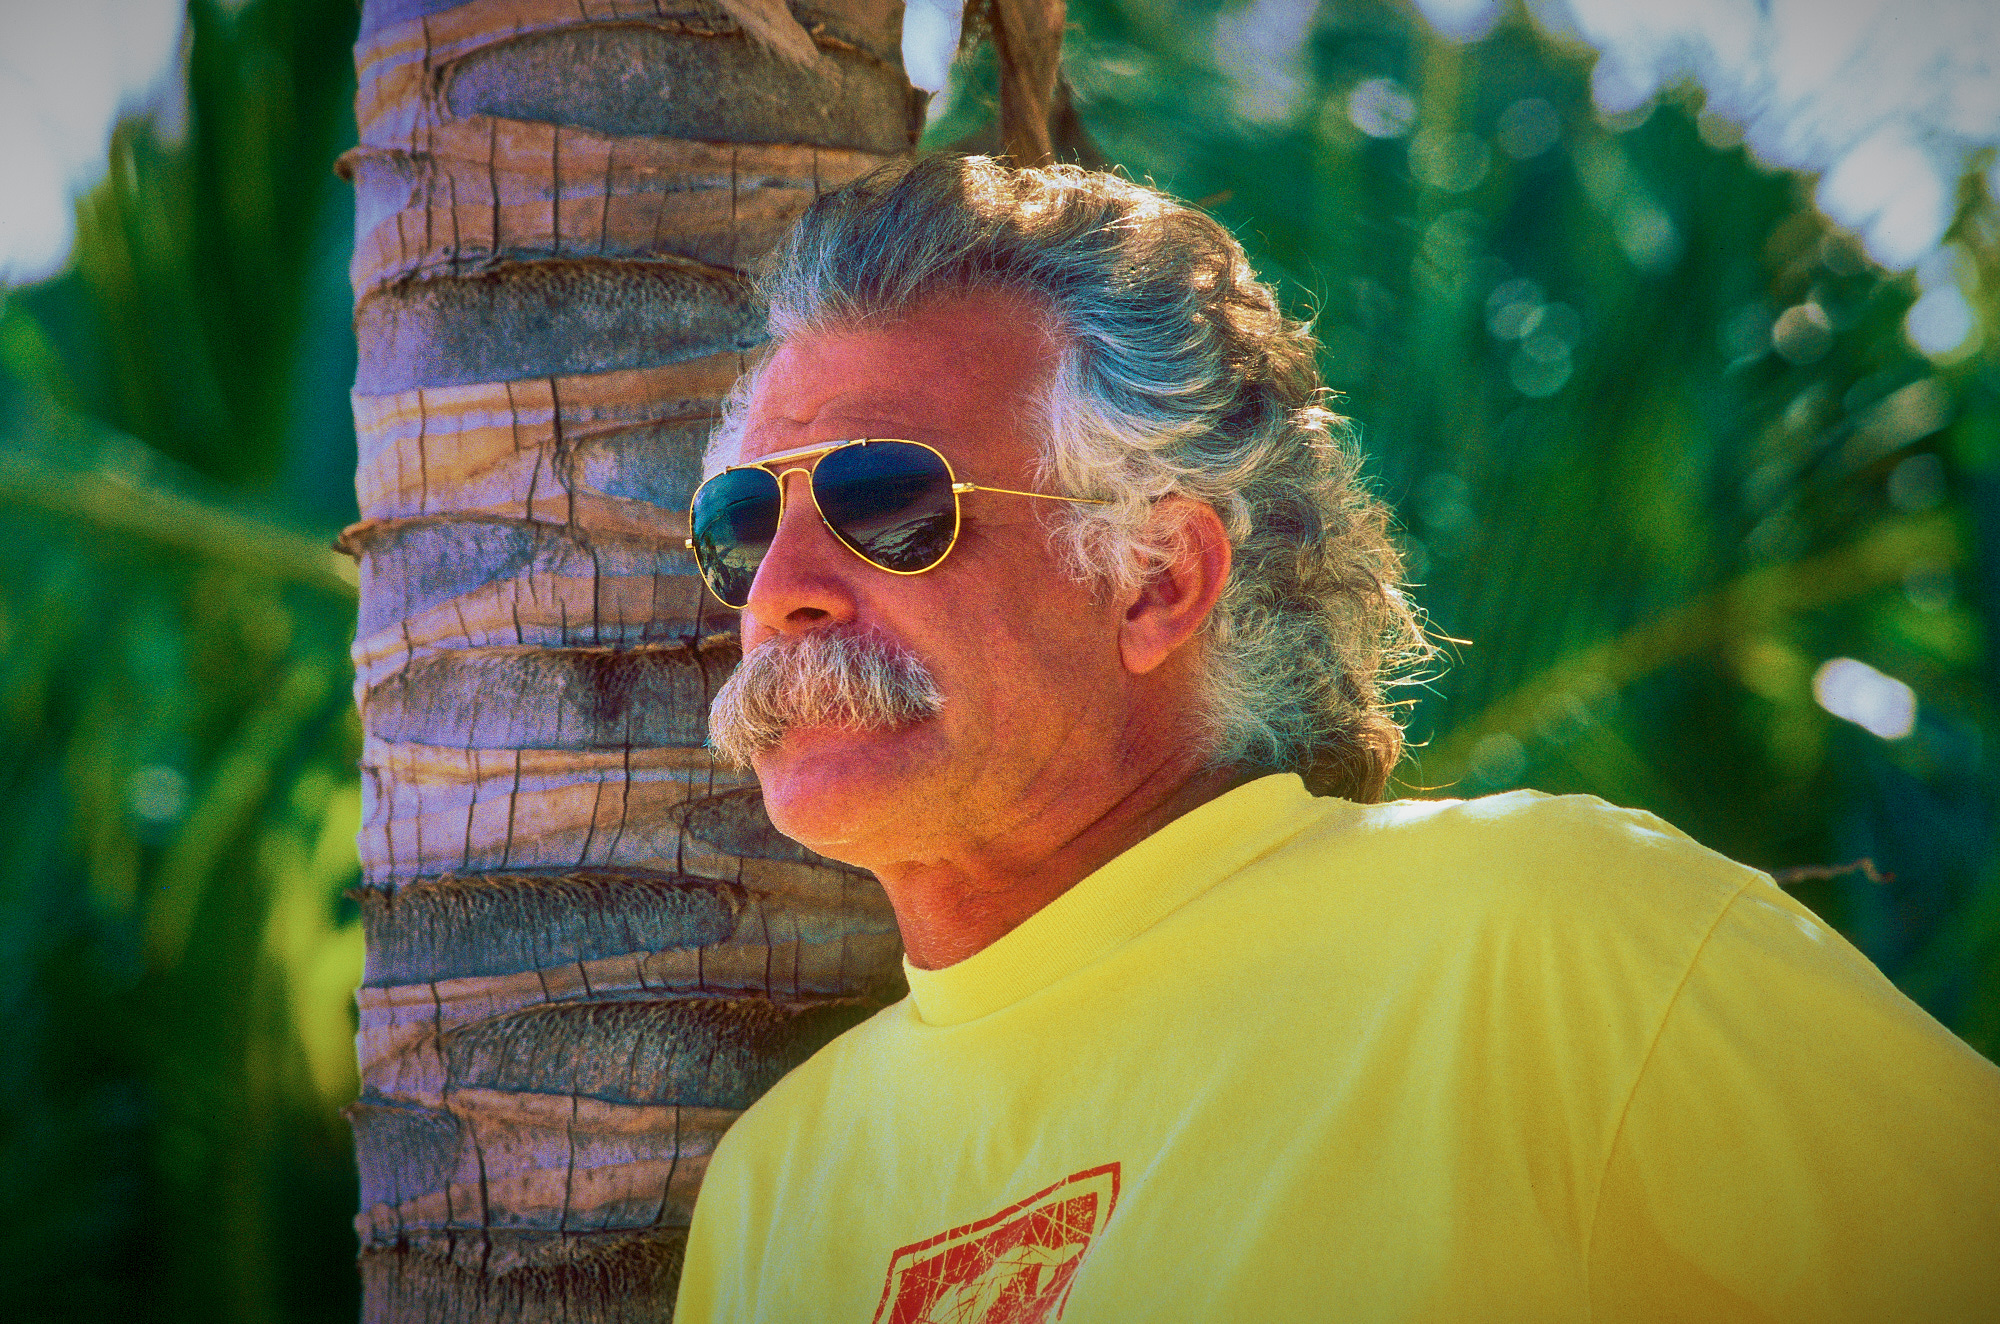 Portrait of Ex-Pilot Jerry Hawk, Little Cayman, Cayman Islands